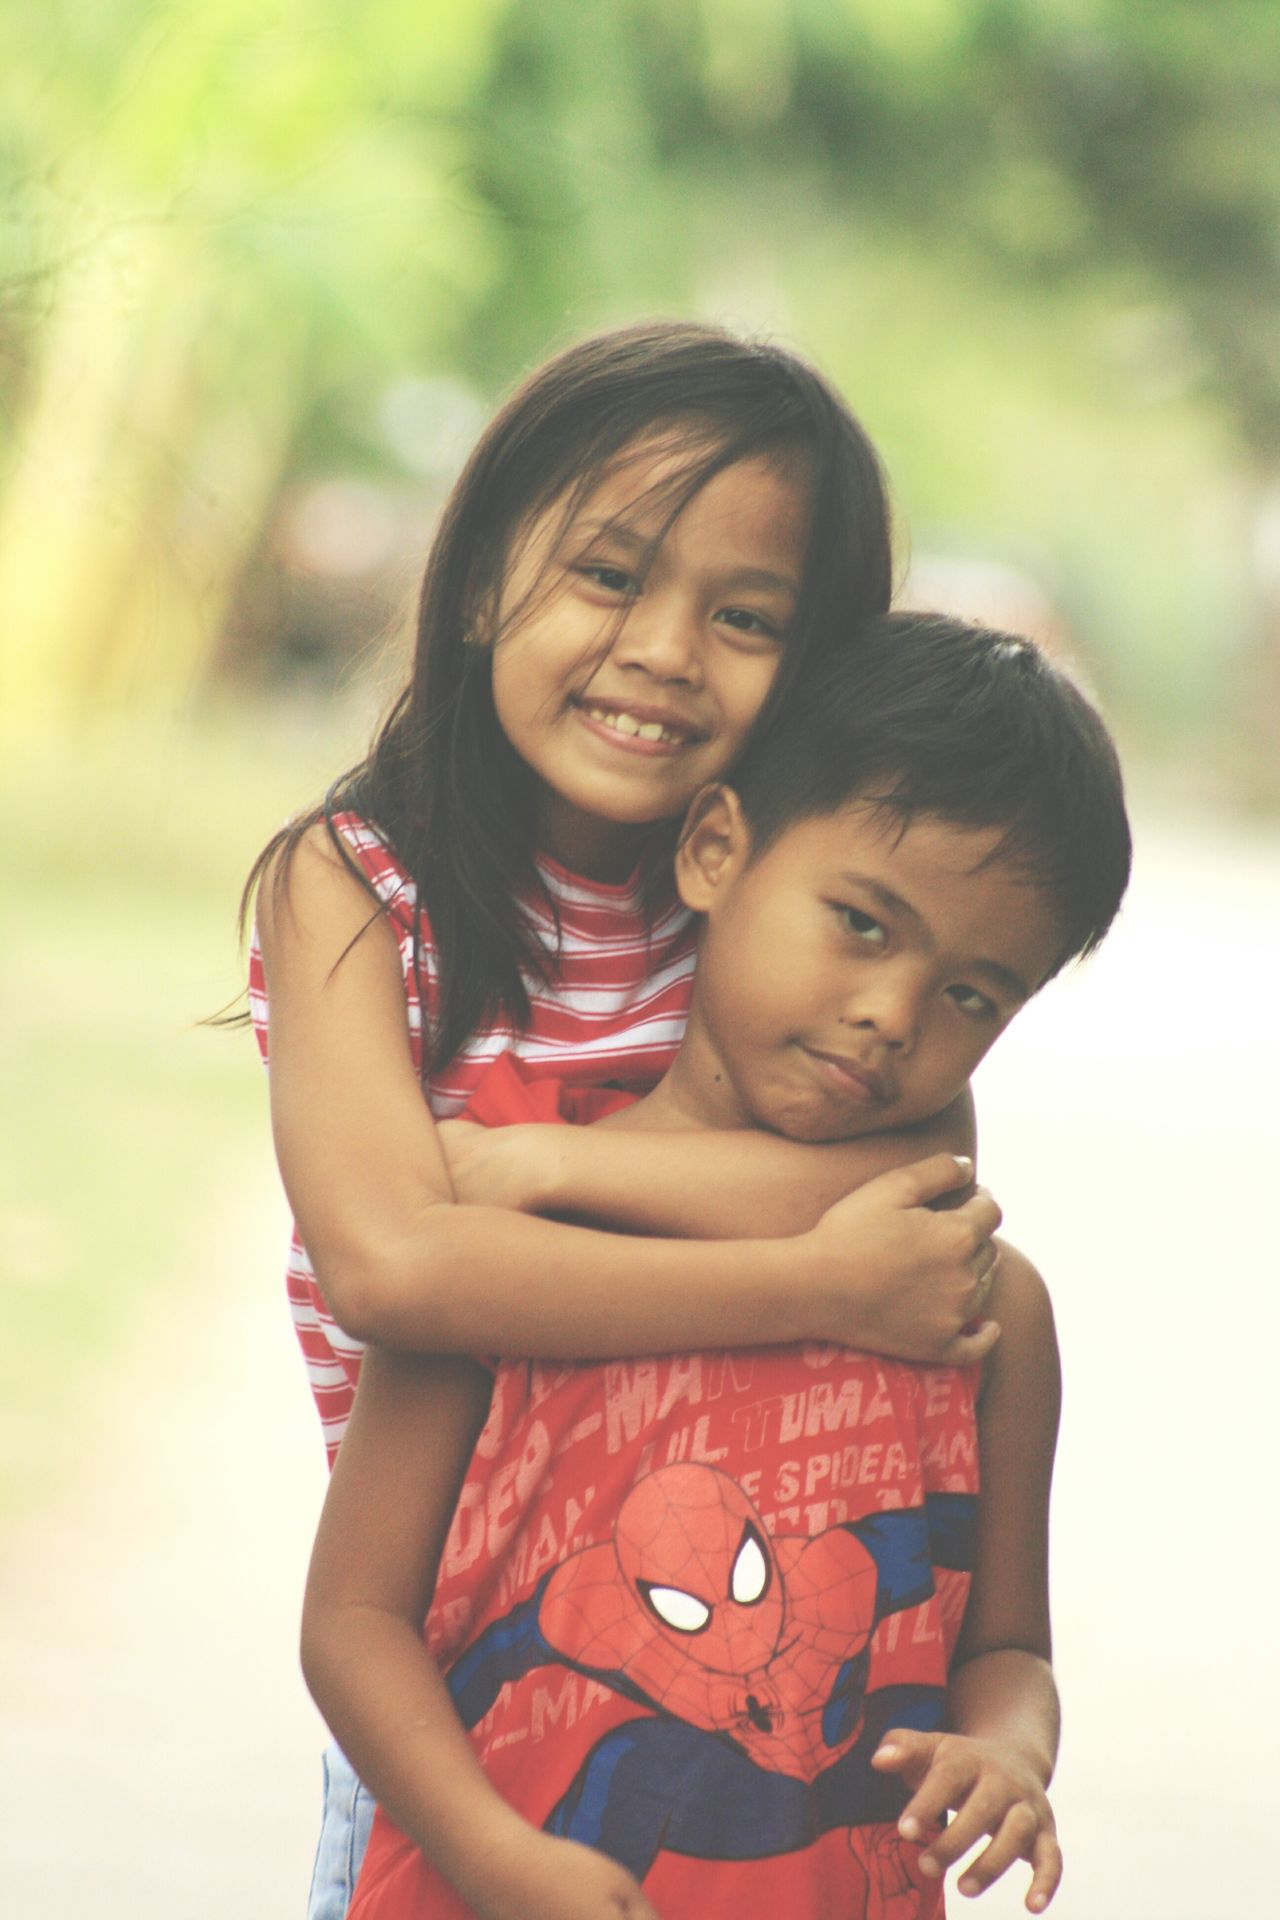 Siblings Child Embracing Smiling Happiness Affectionate Family Offspring Portrait Togetherness Outdoors Portrait Photography Portraits Uniqueness Cheerful Eyeem Weekly EyeEm Week Visualsoflife Photographylovers EyeemPhilippines EyeEm Gallery Photography Taking Photos EyeEm Philippines Day